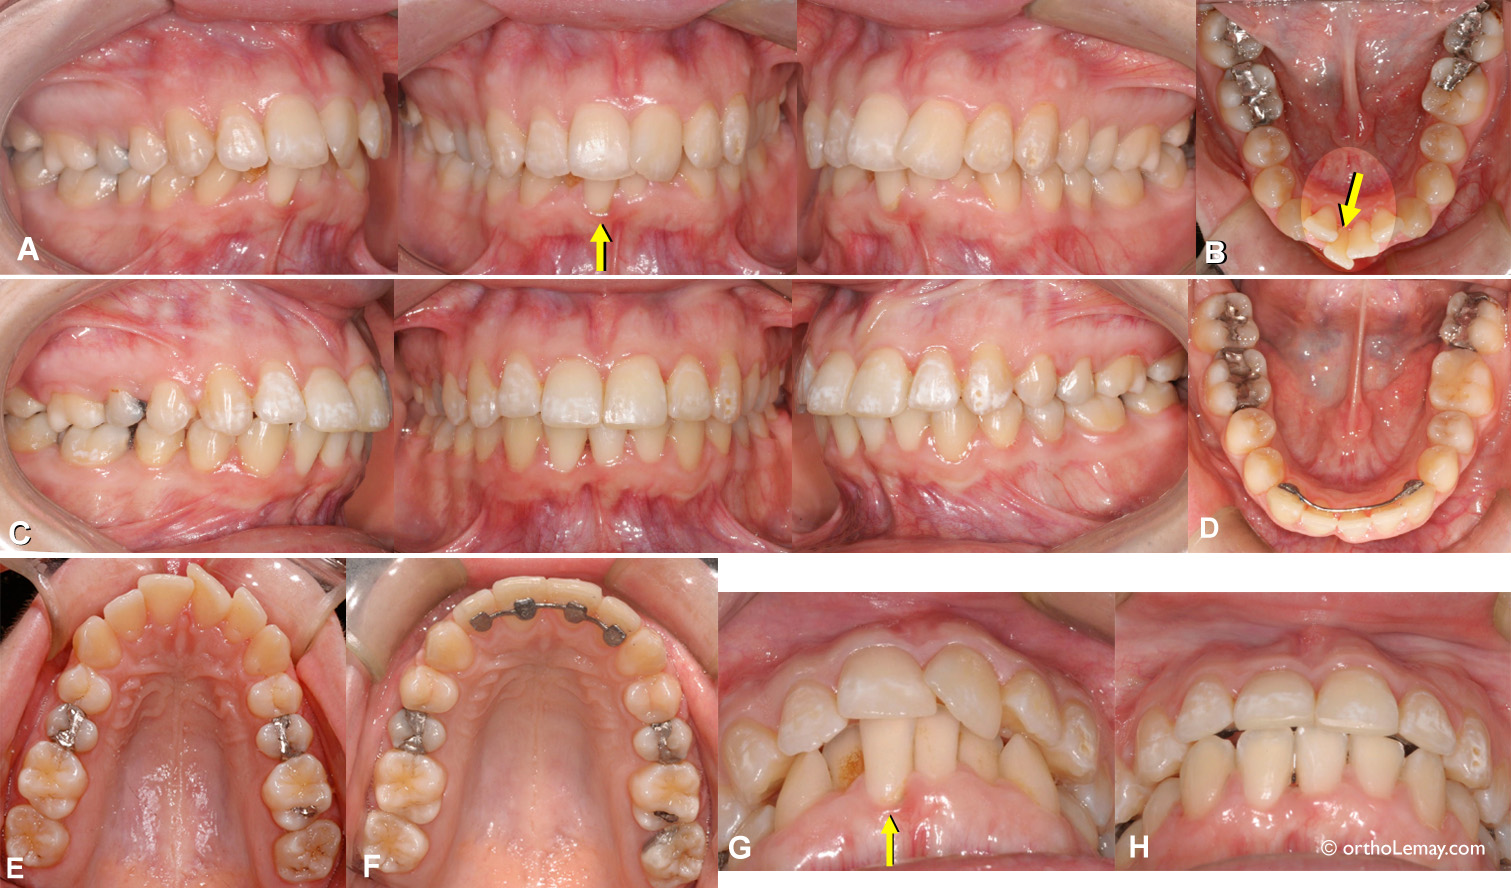 Extraction d'une incisive inférieure en présence de chevauchement dentaire pour faire des corrections orthodontiques. Lower incisor extraction for orthodontic coeerction of lower anterior crowding.